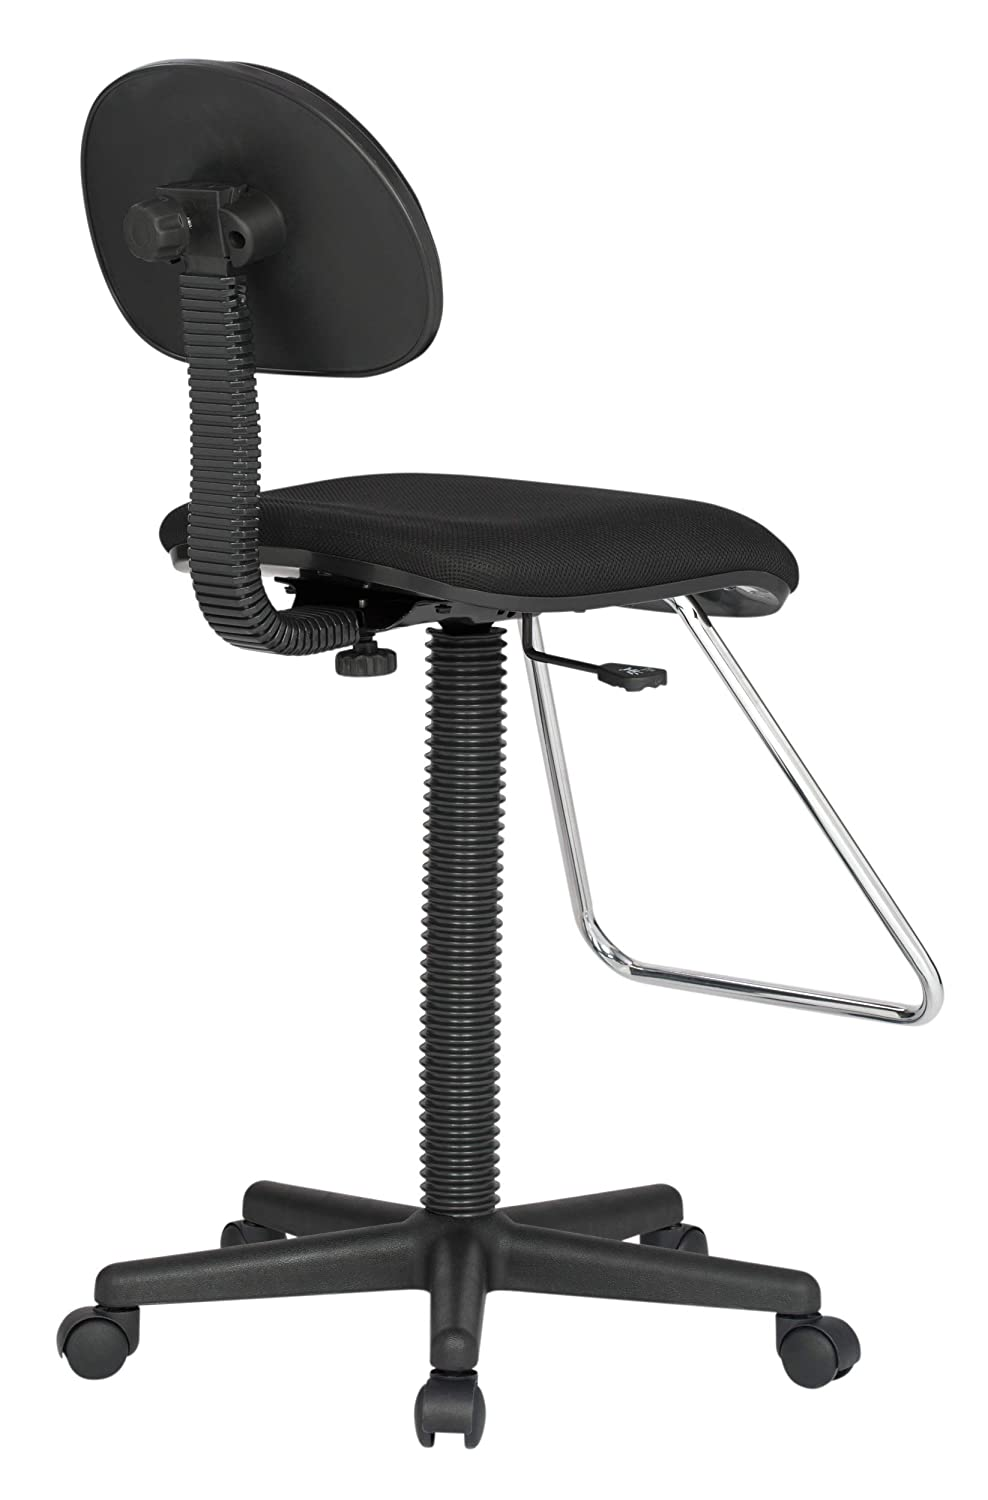 Studio Designs Maxima II Drafting Chair in Black 18622